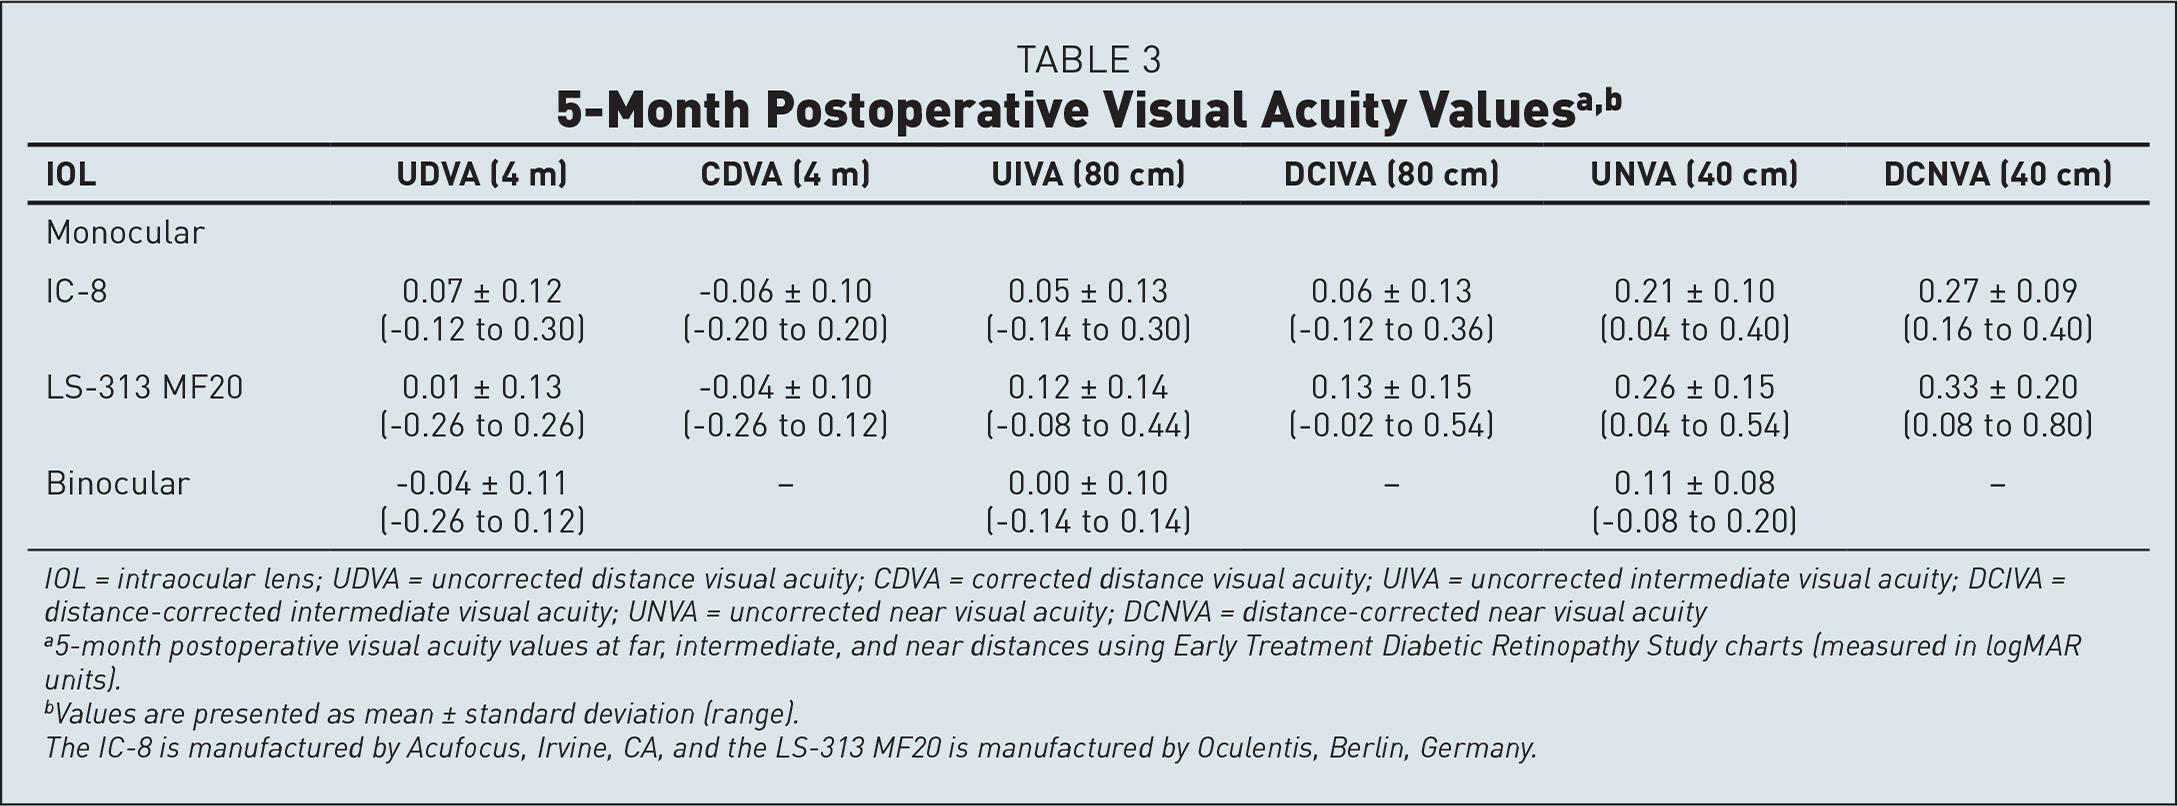 5-Month Postoperative Visual Acuity Valuesa,b